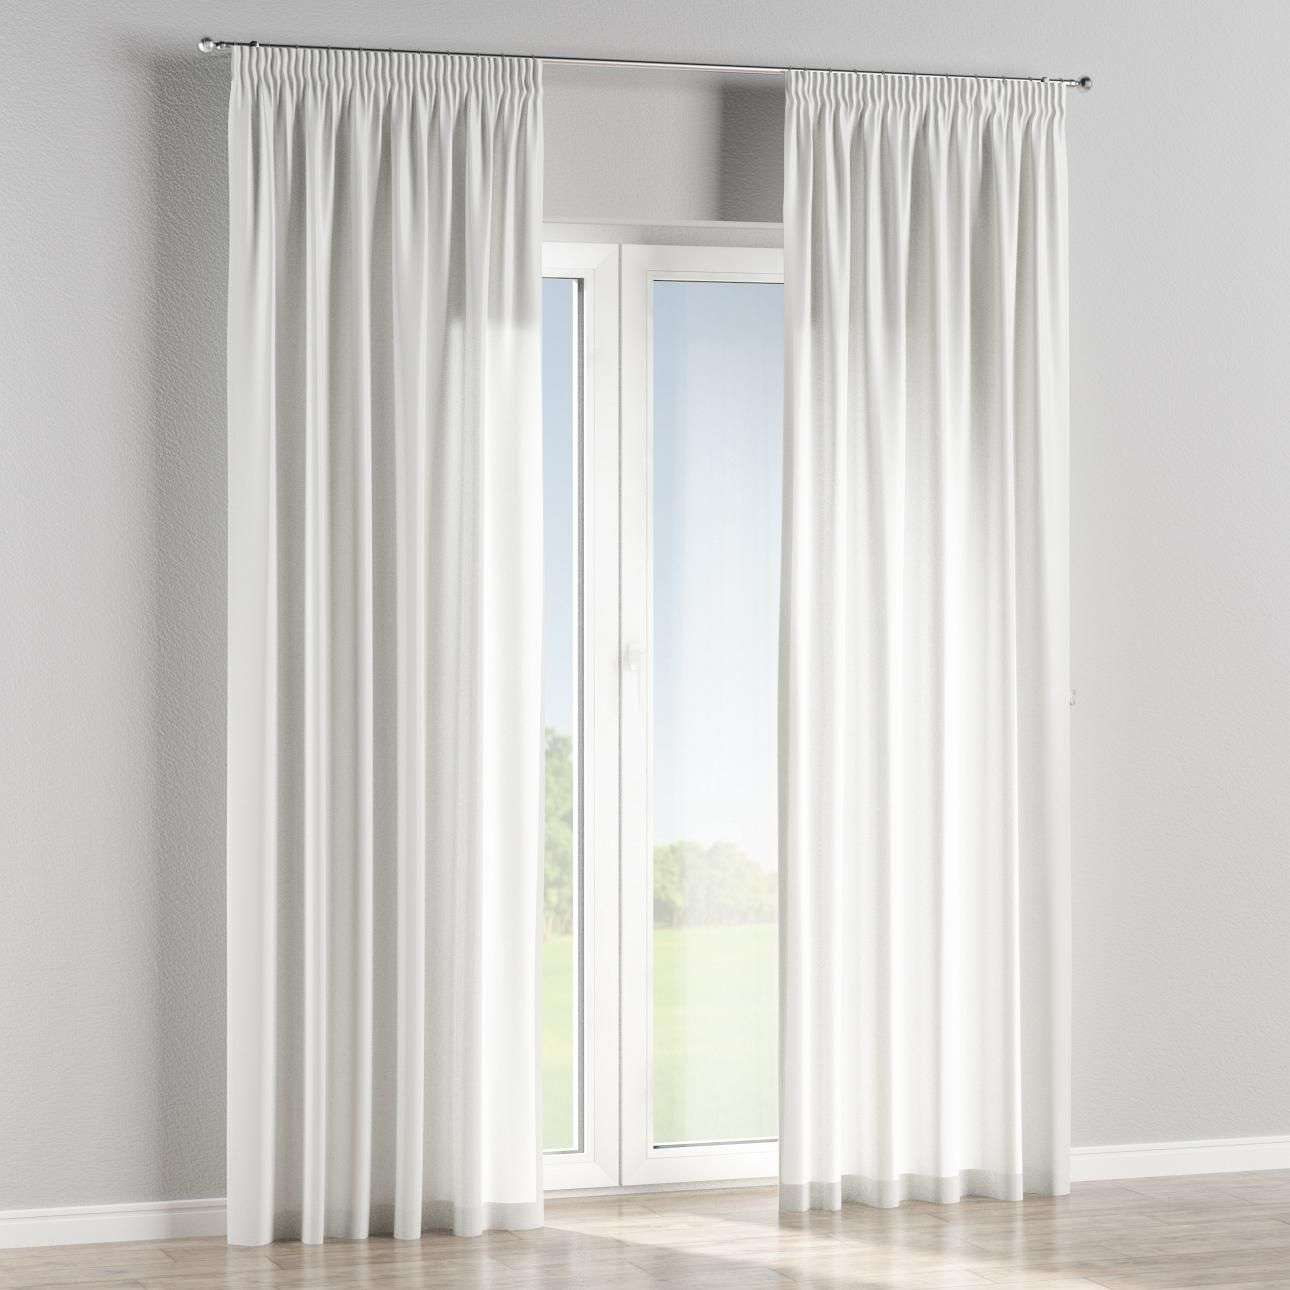 Pencil pleat curtains in collection Norge, fabric: 140-92